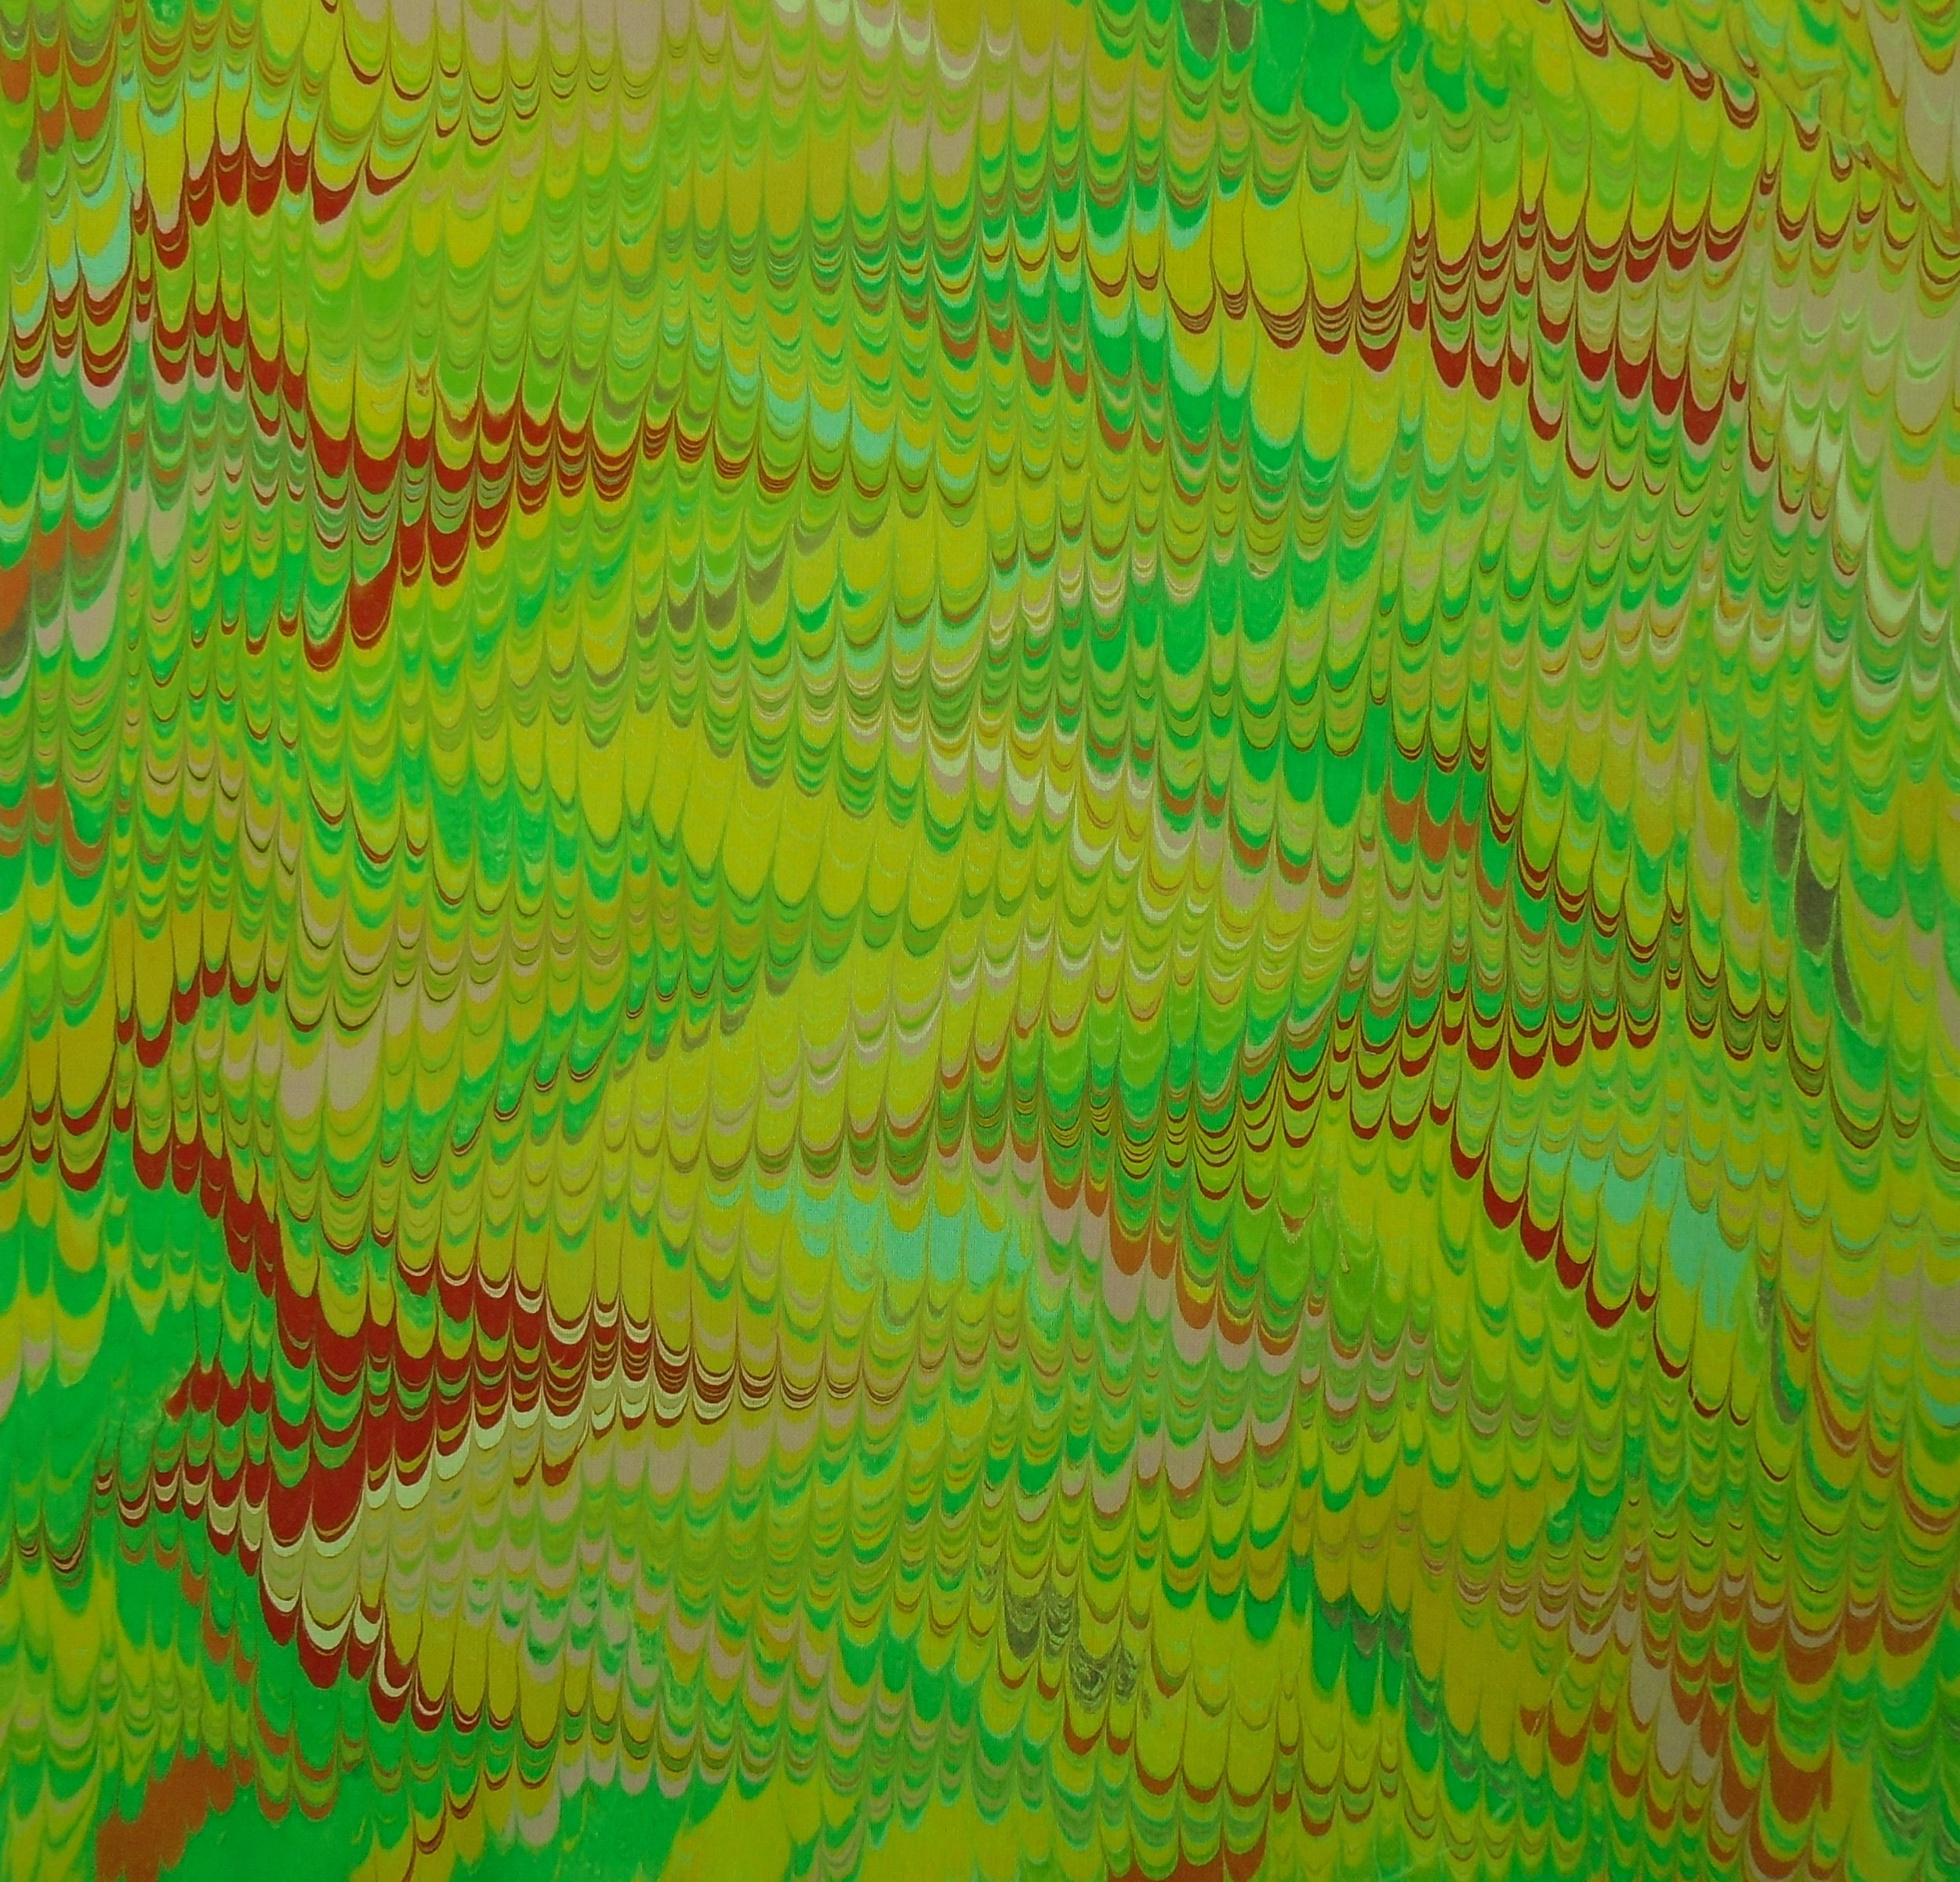 """""""Nonpareil"""" pattern marbled onto chartreuse fabric. 9.25"""" x 9.25"""""""